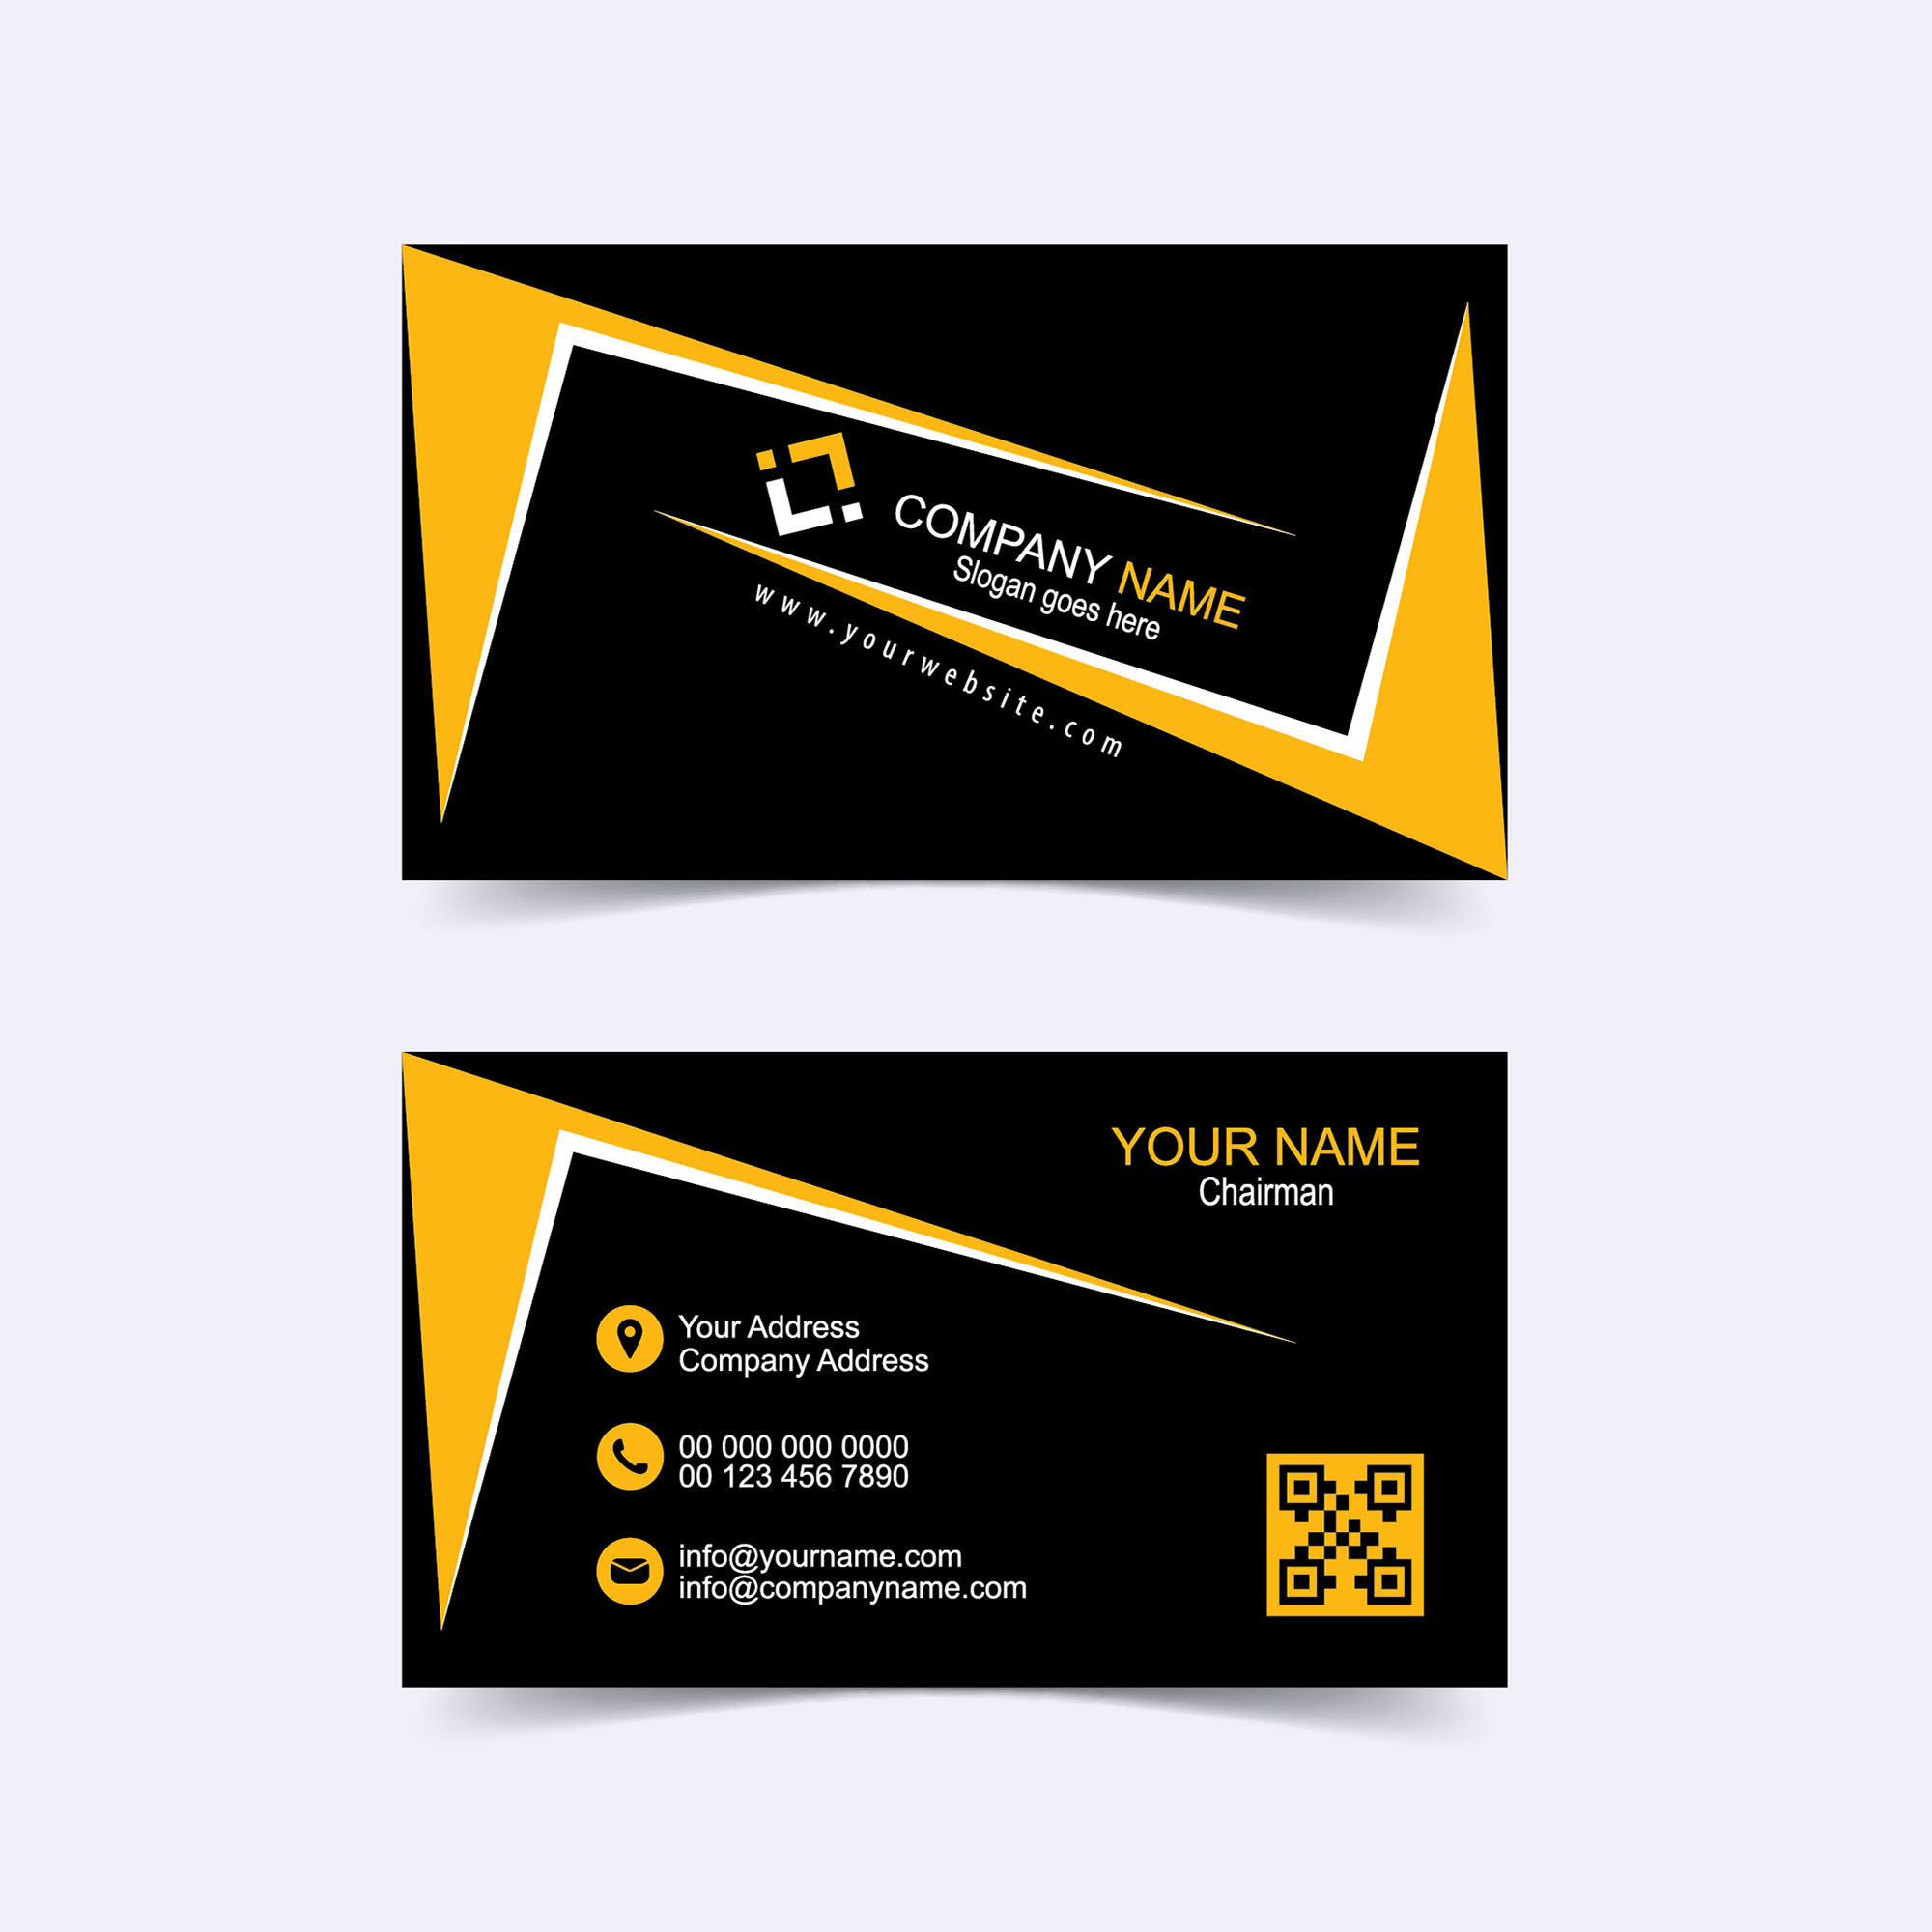 Amazing vector business cards photos business card ideas etadamfo modern business card template vector wisxi reheart Gallery